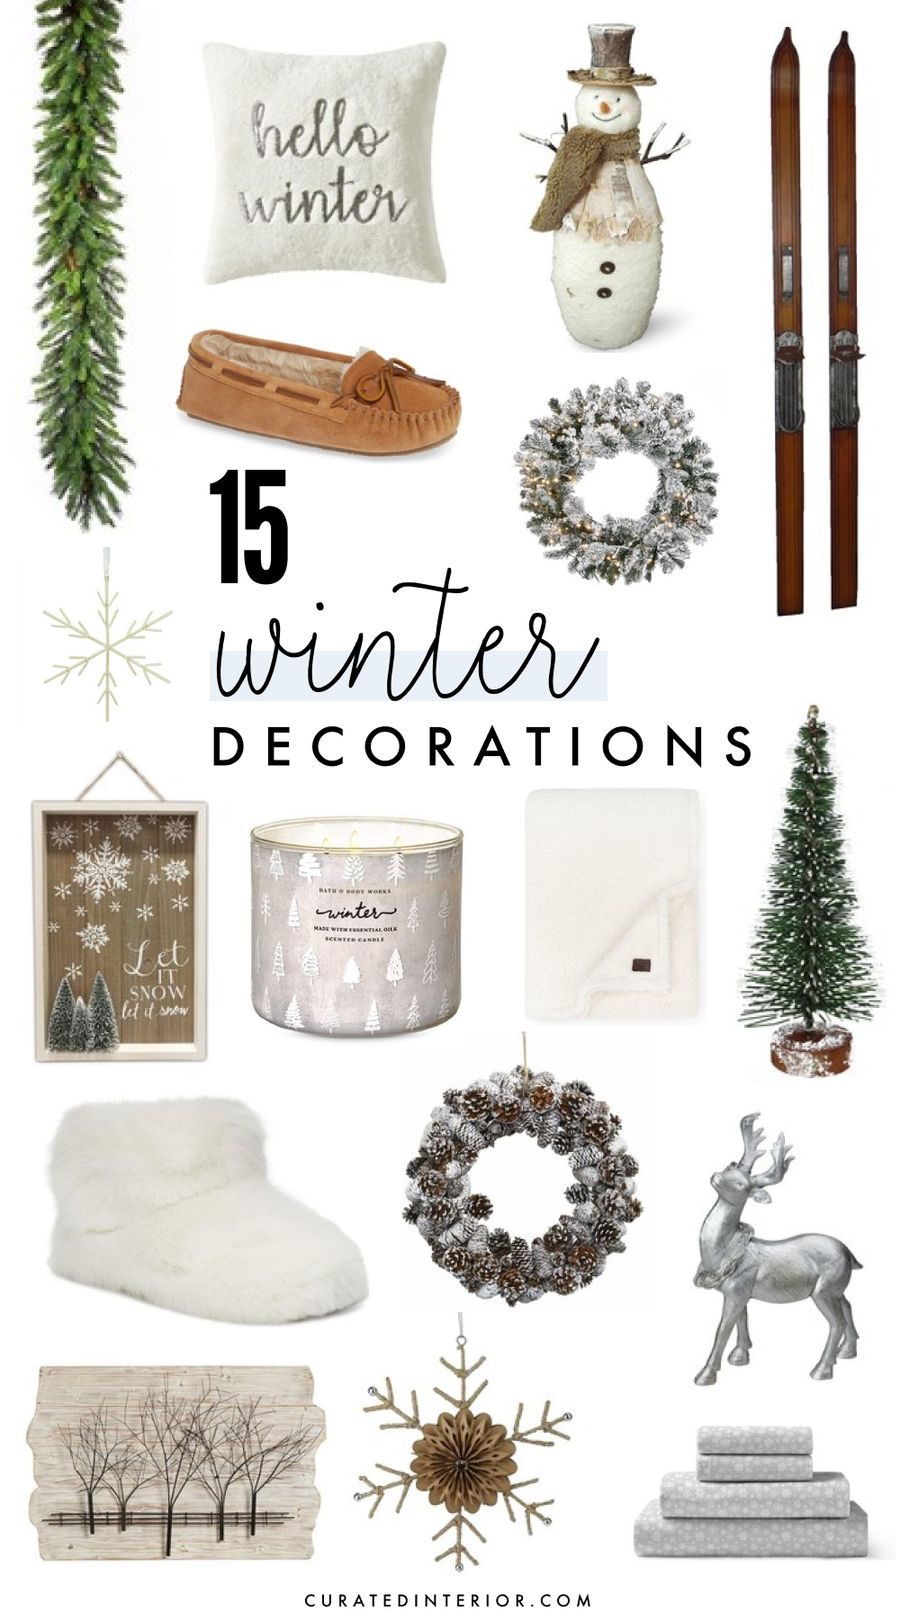 15 winter decorations for a cozy home